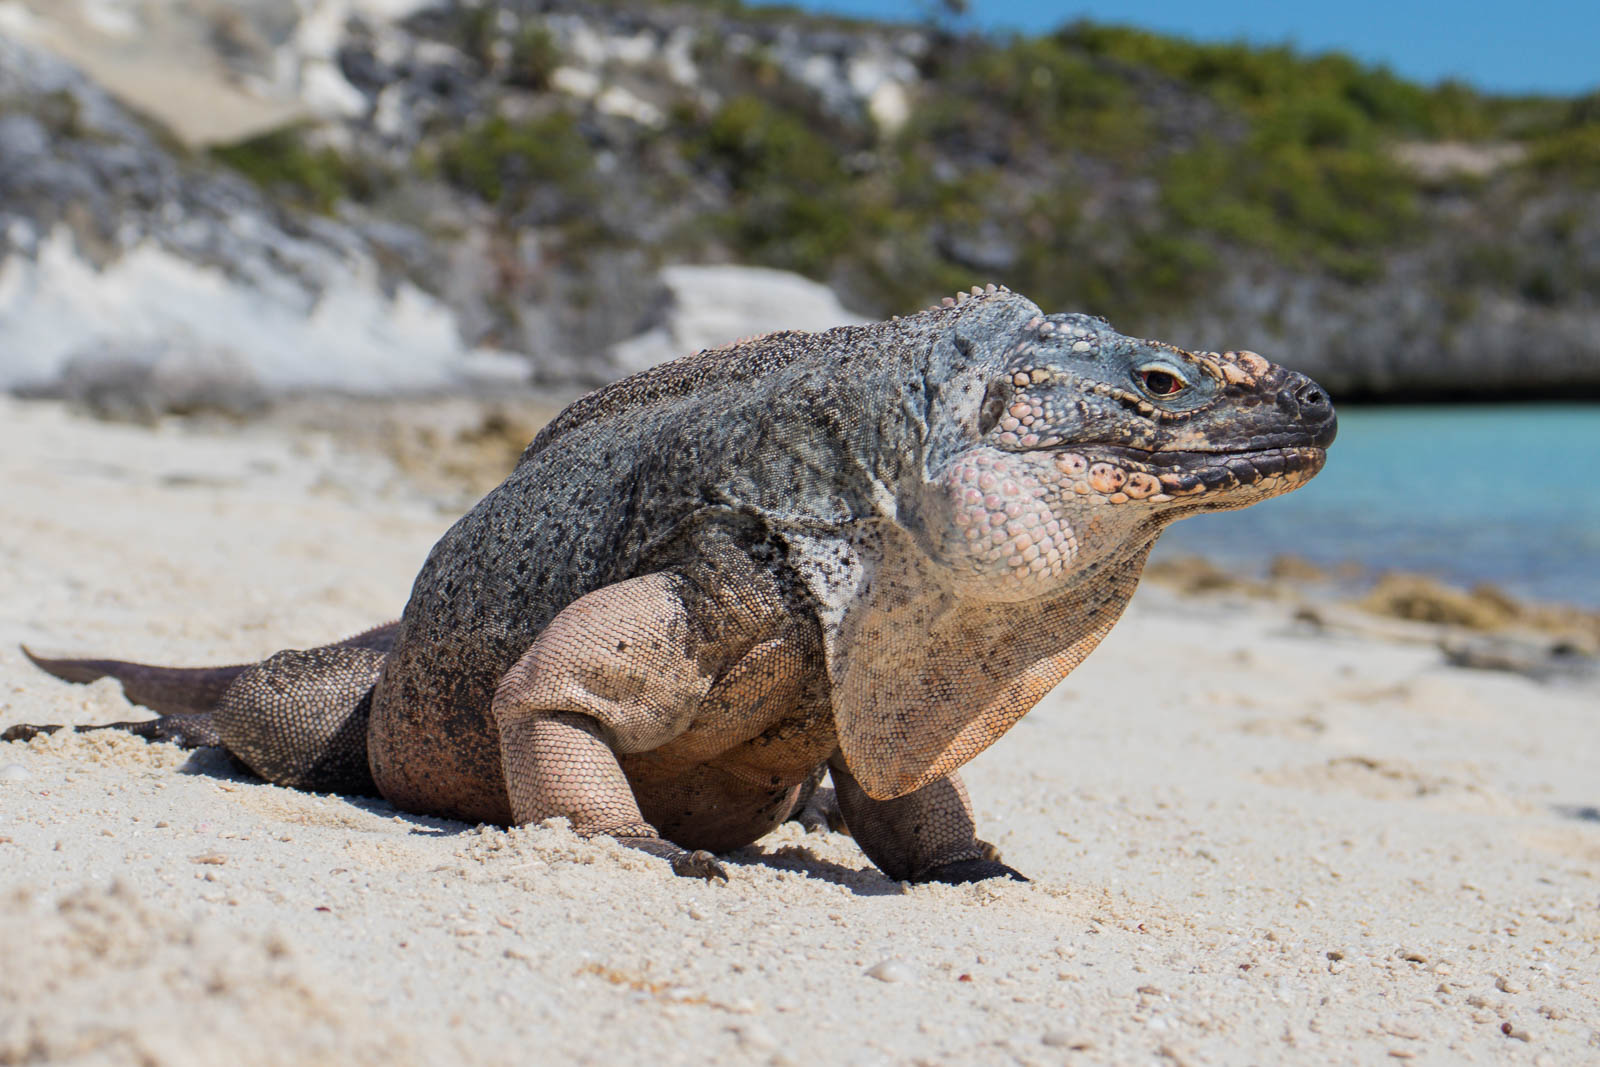 Your trips to Bahamas from Fort Lauderdale can take you to see endangered iguanas. See Bitter Guana Cay on your Fort Lauderdale Bahamas day trip!